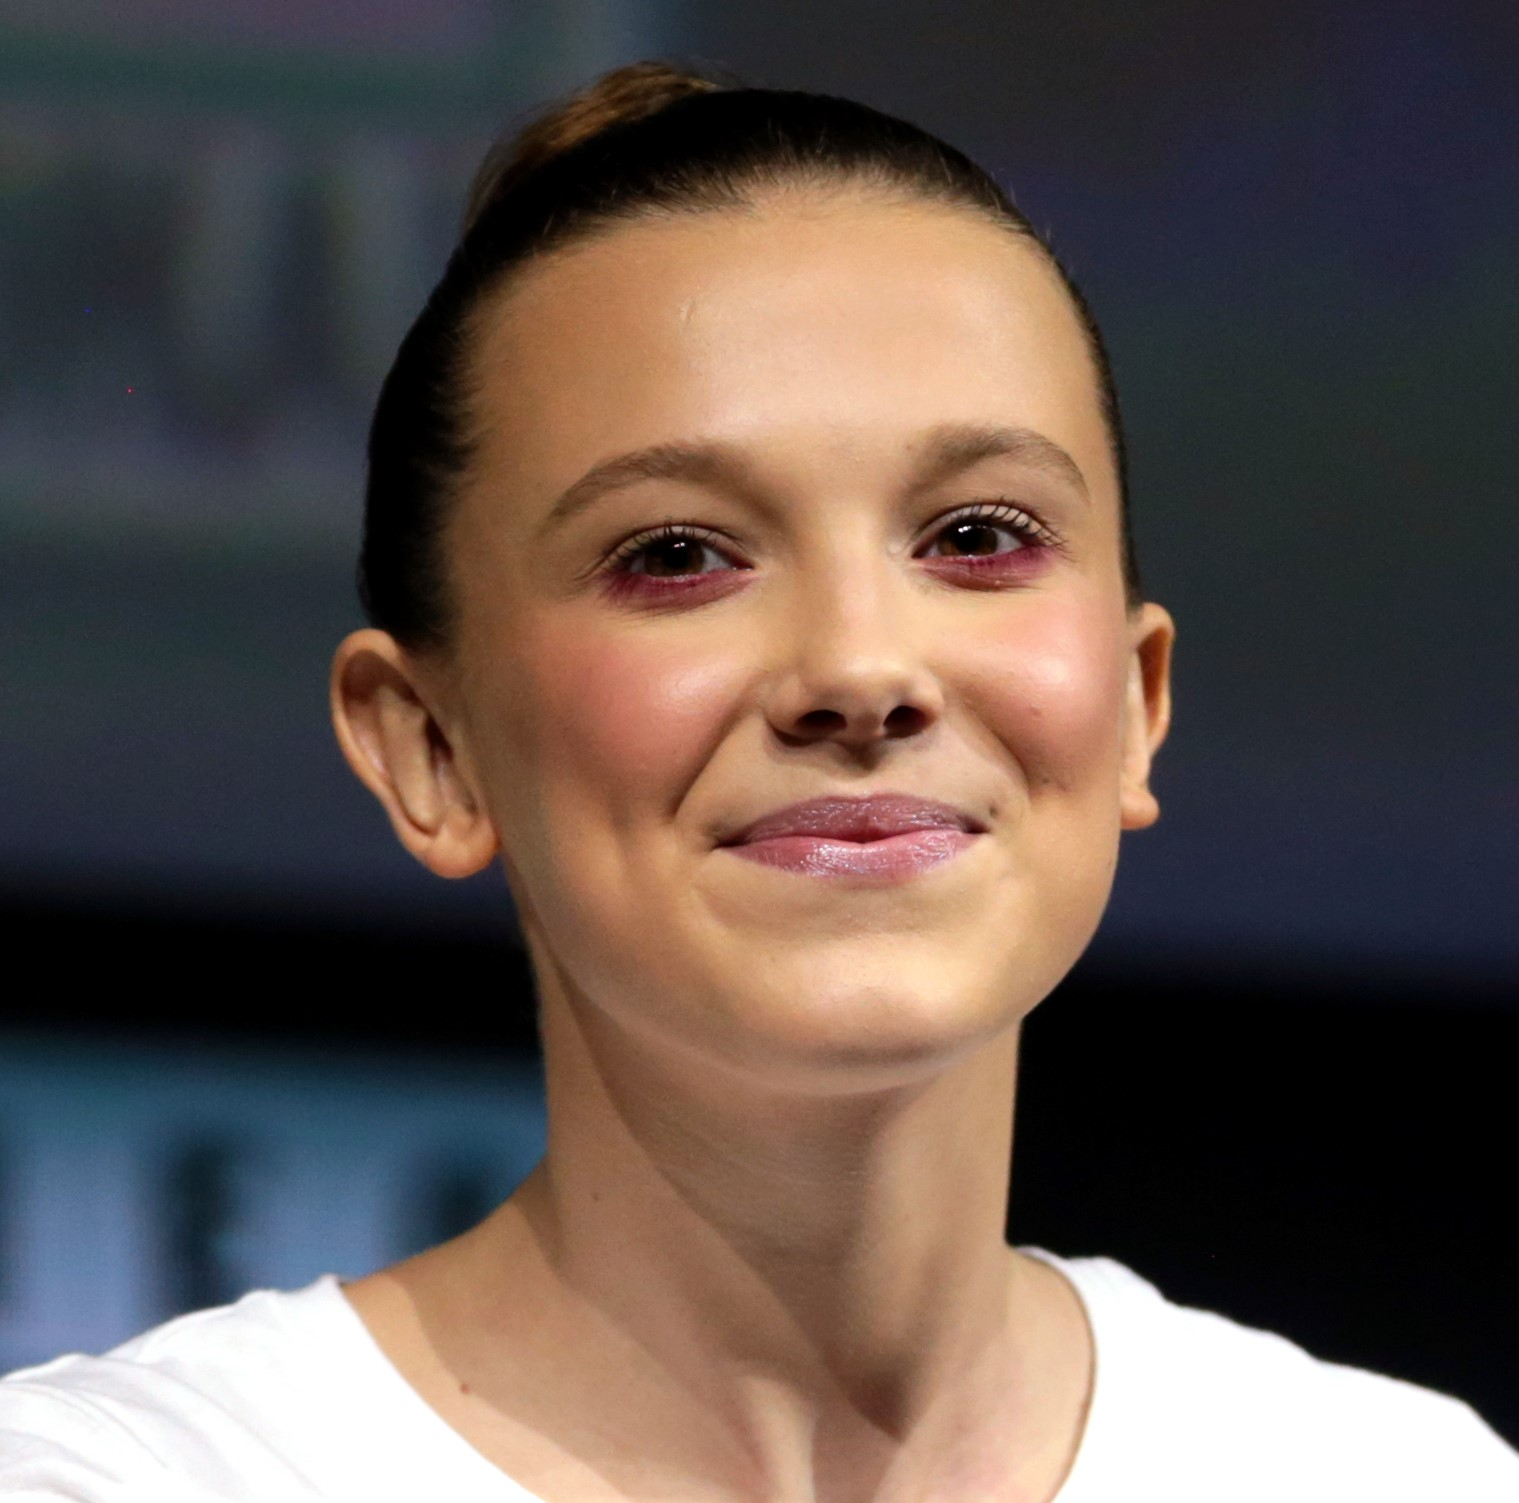 File:Millie Bobby Brown (43724155691) (cropped).jpg - Wikimedia Commons